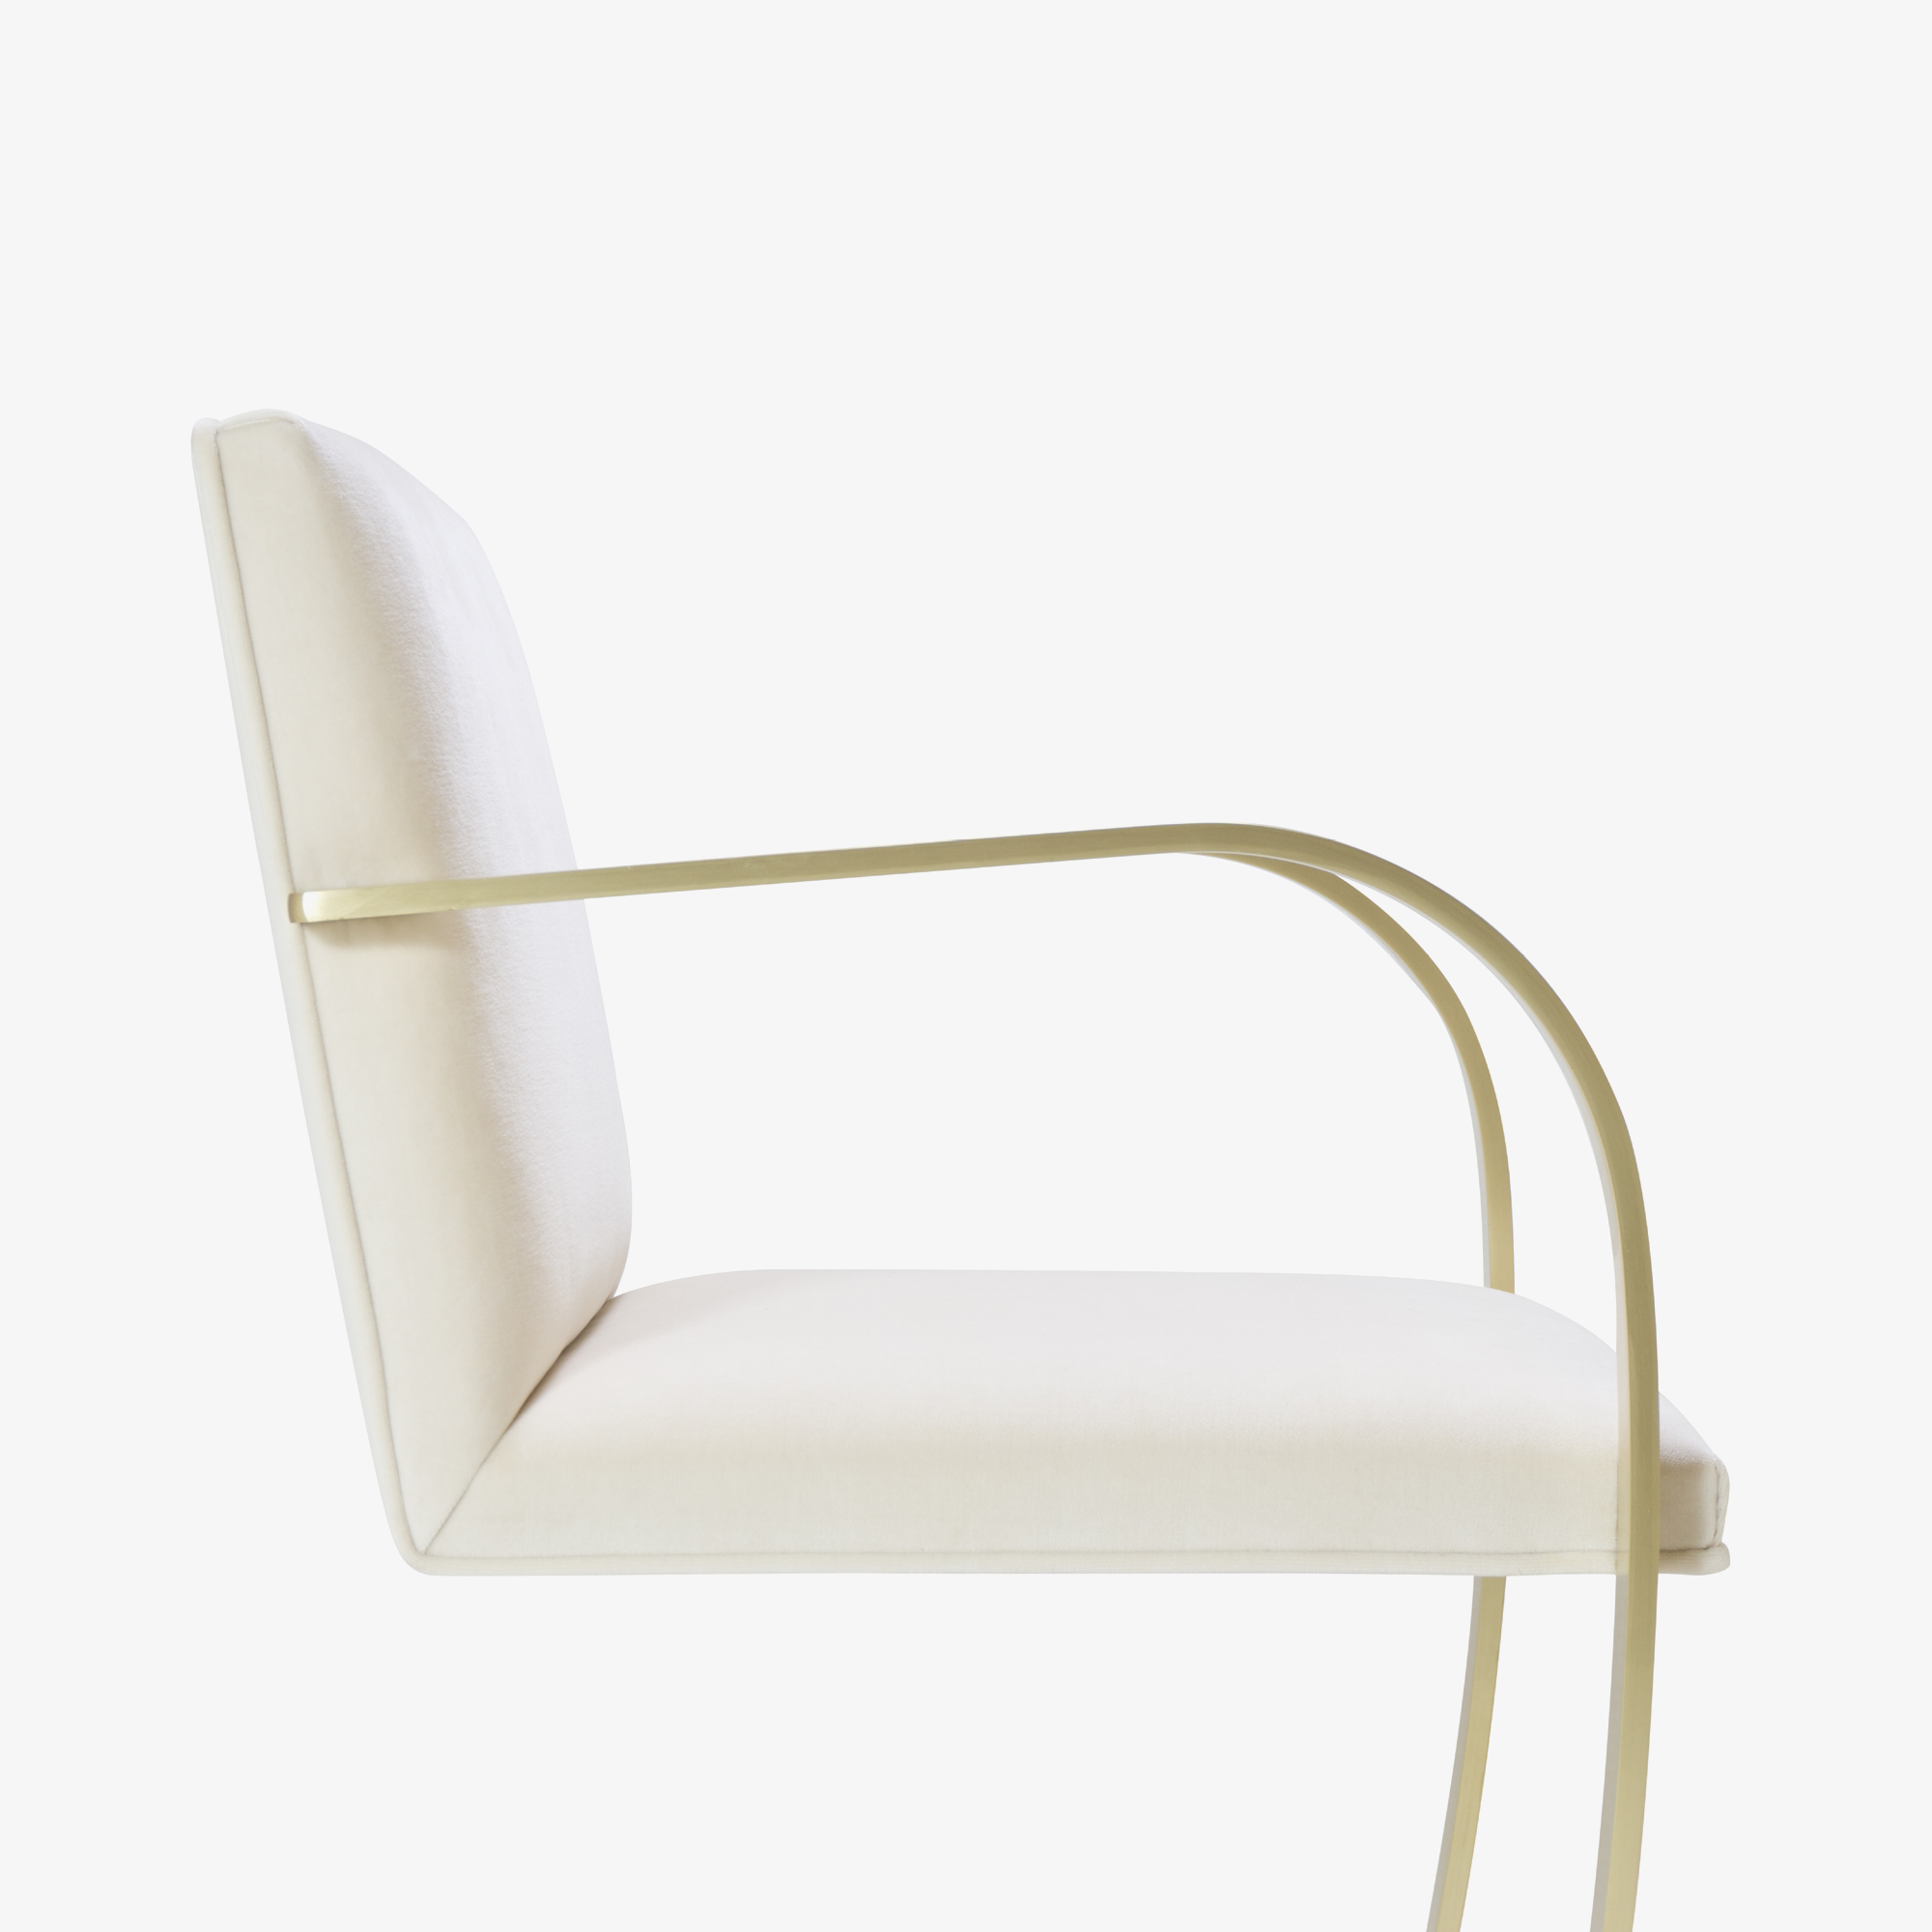 Brno Flat-Bar Chairs in Creme Velvet, Brushed Brass5.png